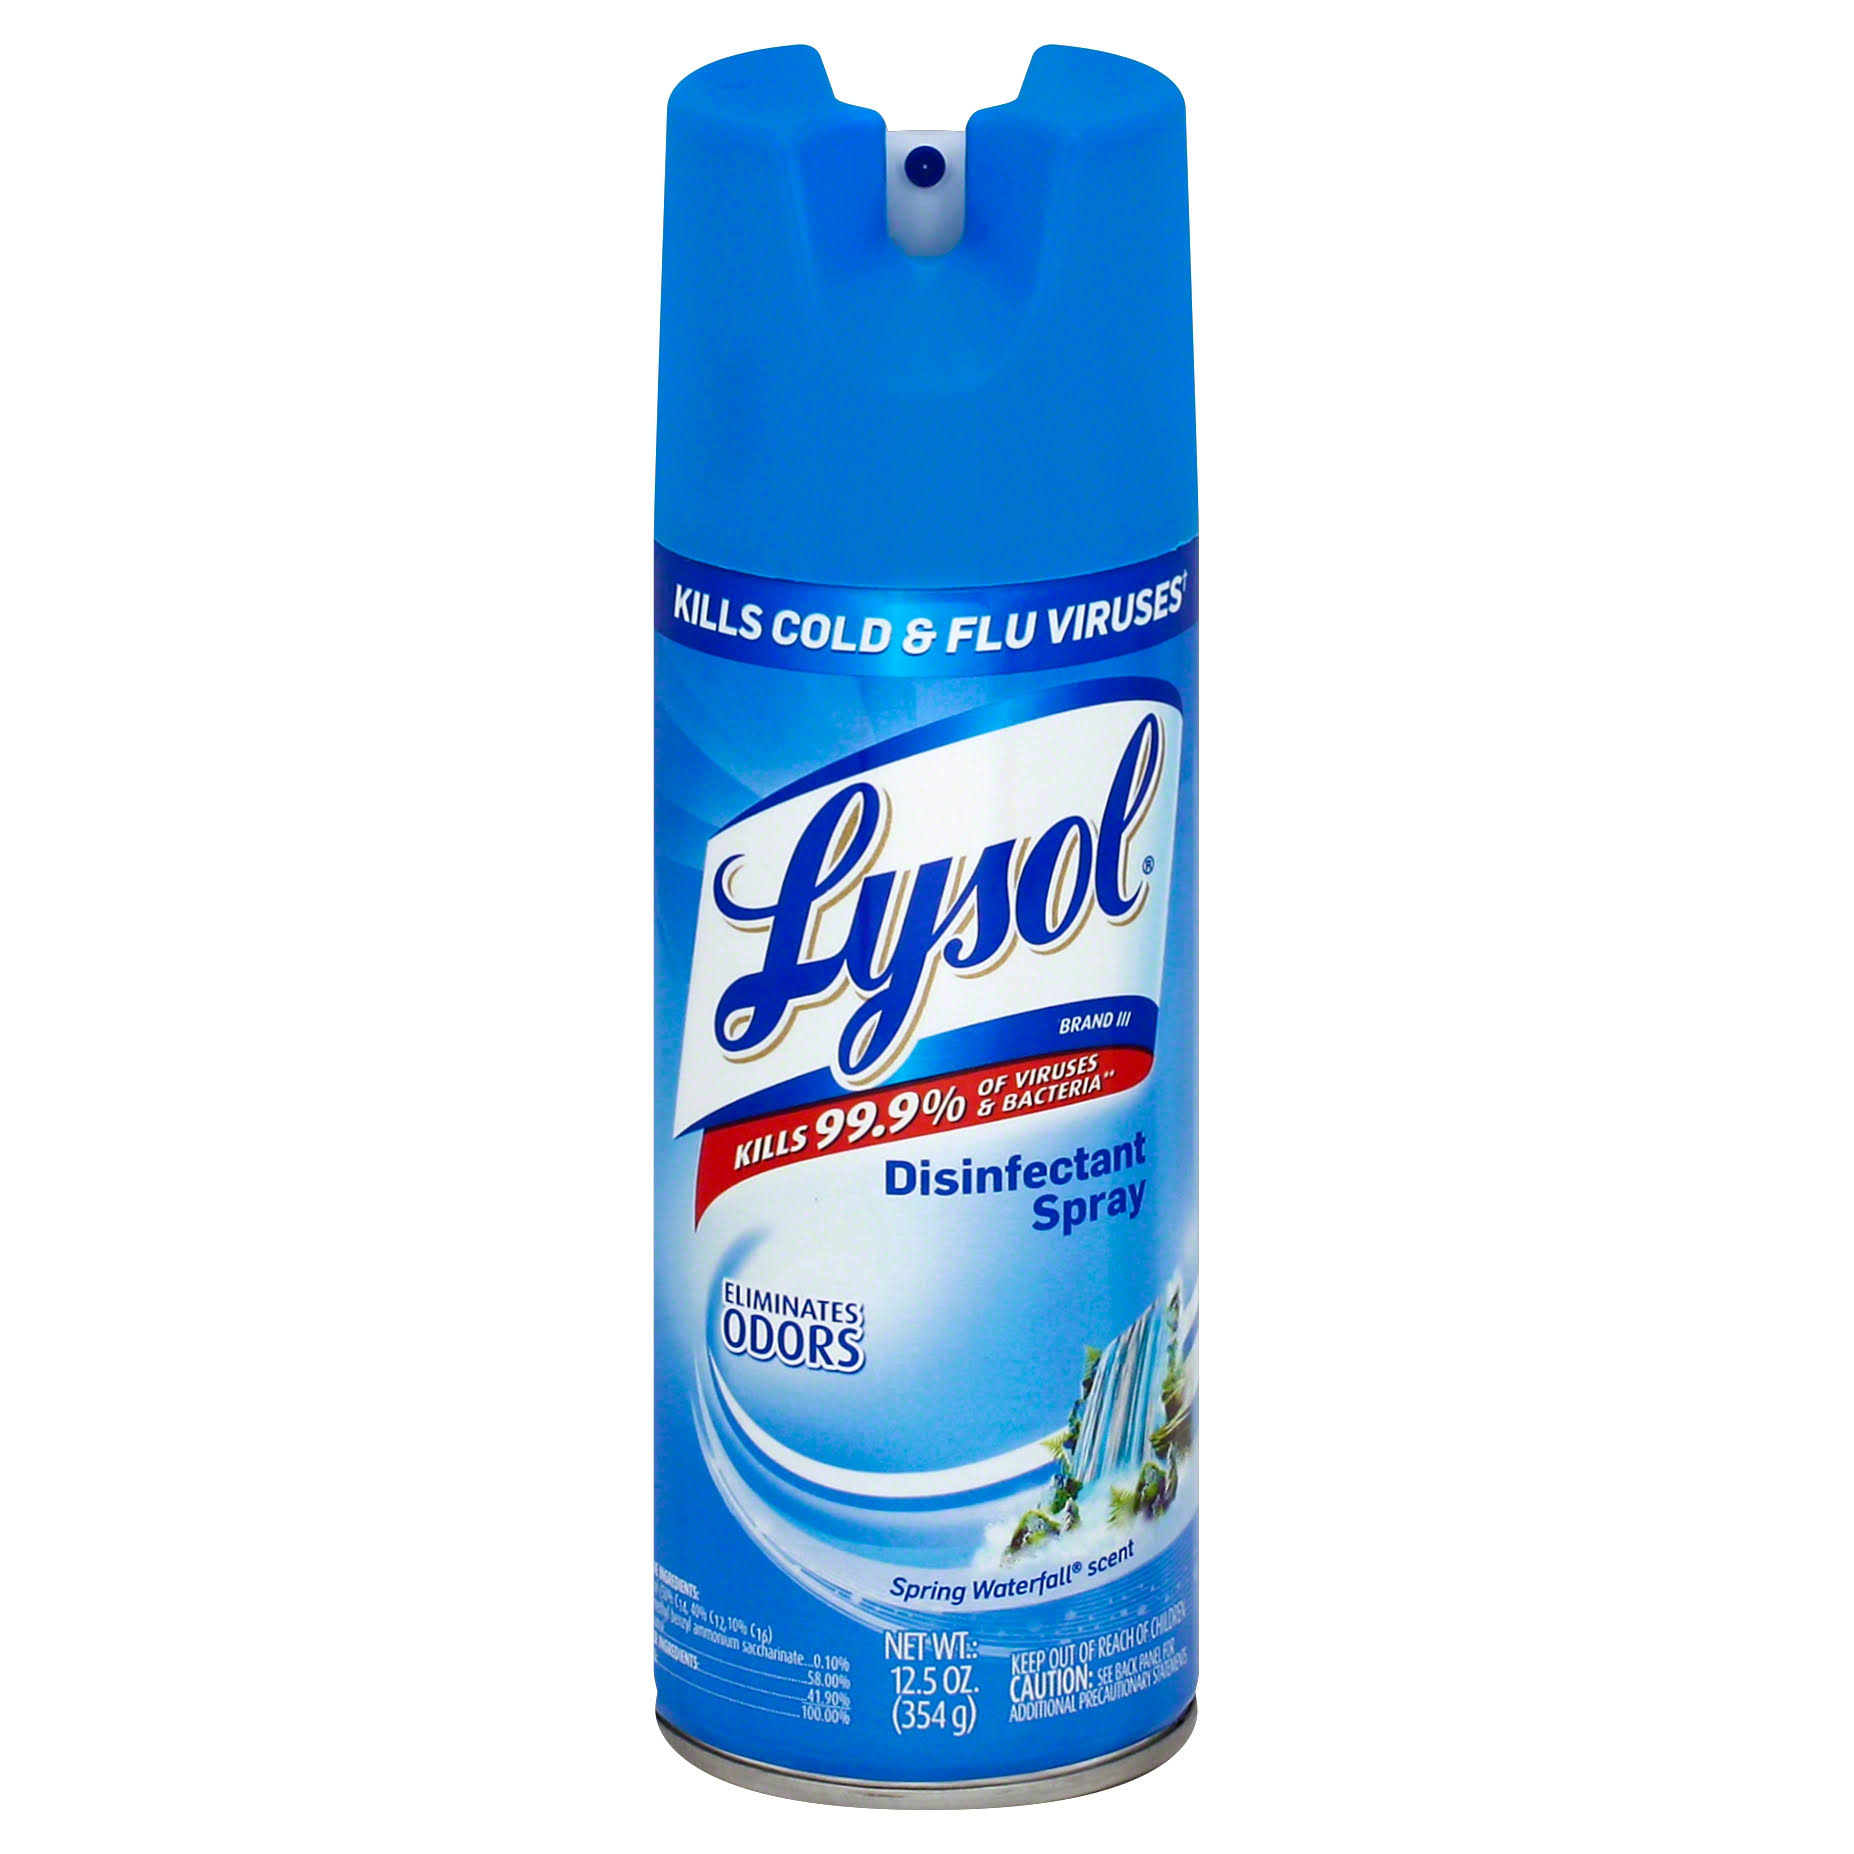 Lysol Disinfectant Spray - Spring Waterfall, 12.50oz